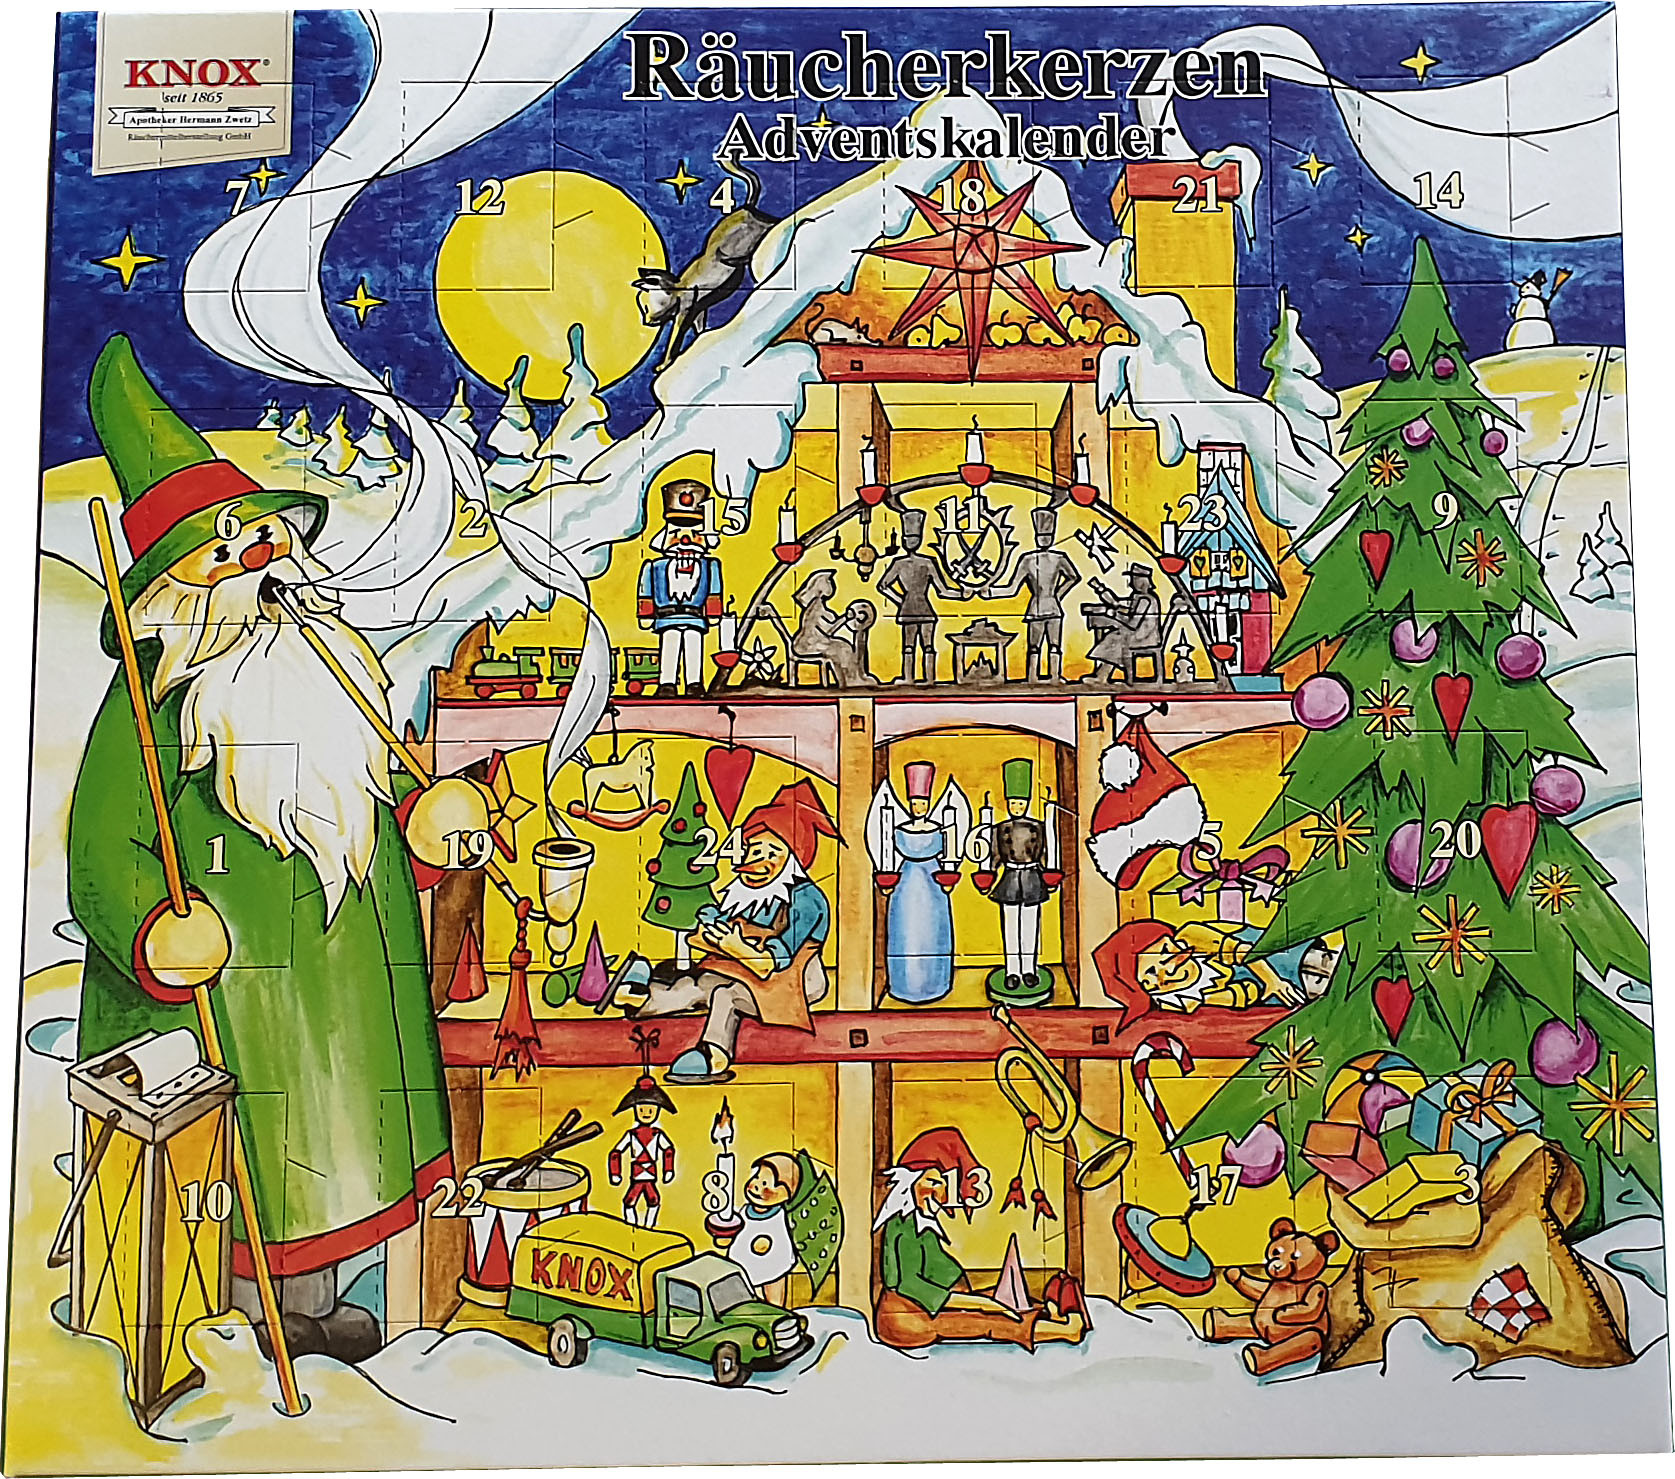 KNOX Räucherkerzen-Adventskalender 2020